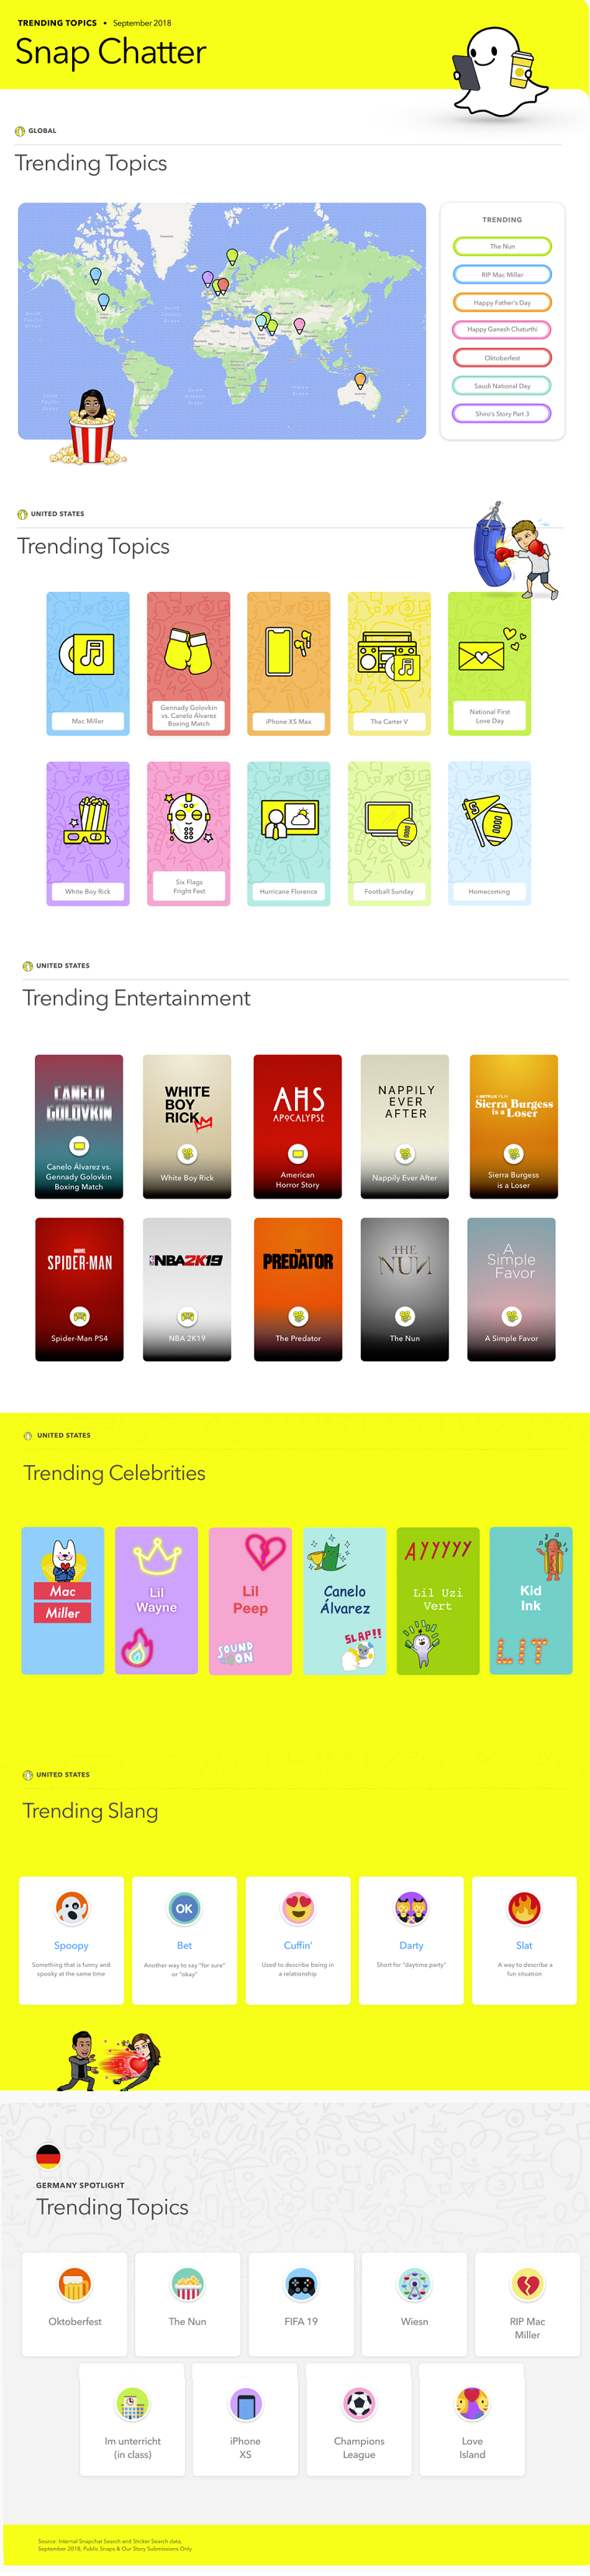 Listing looks at the key terms which gained momentum on Snapchat in September